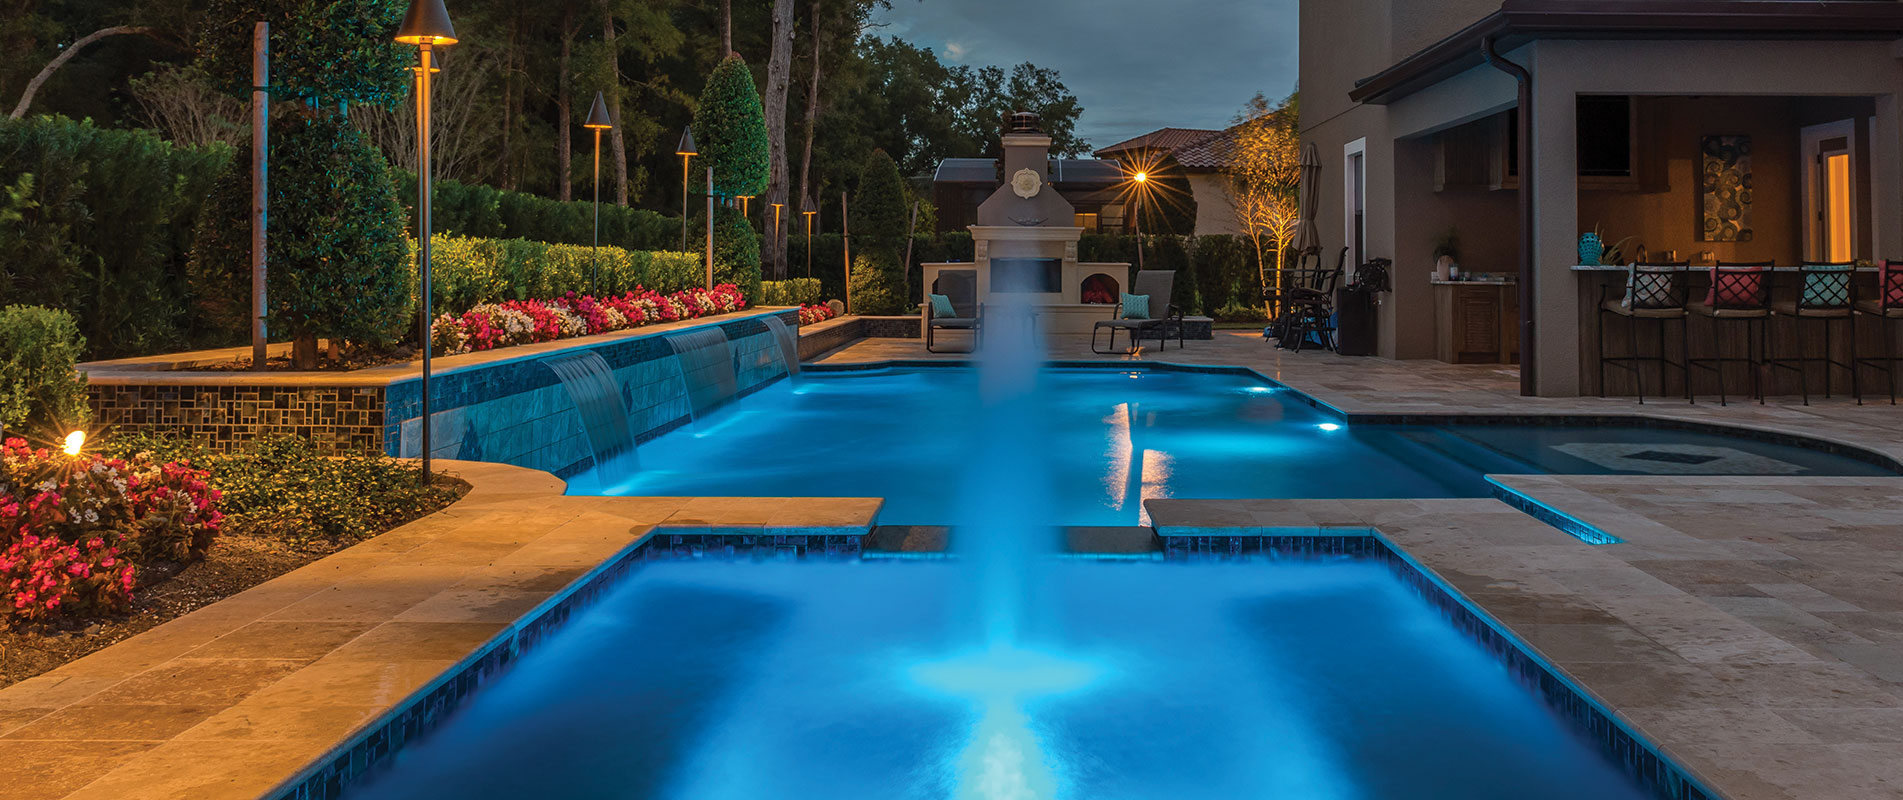 custom-pool-at-night-2